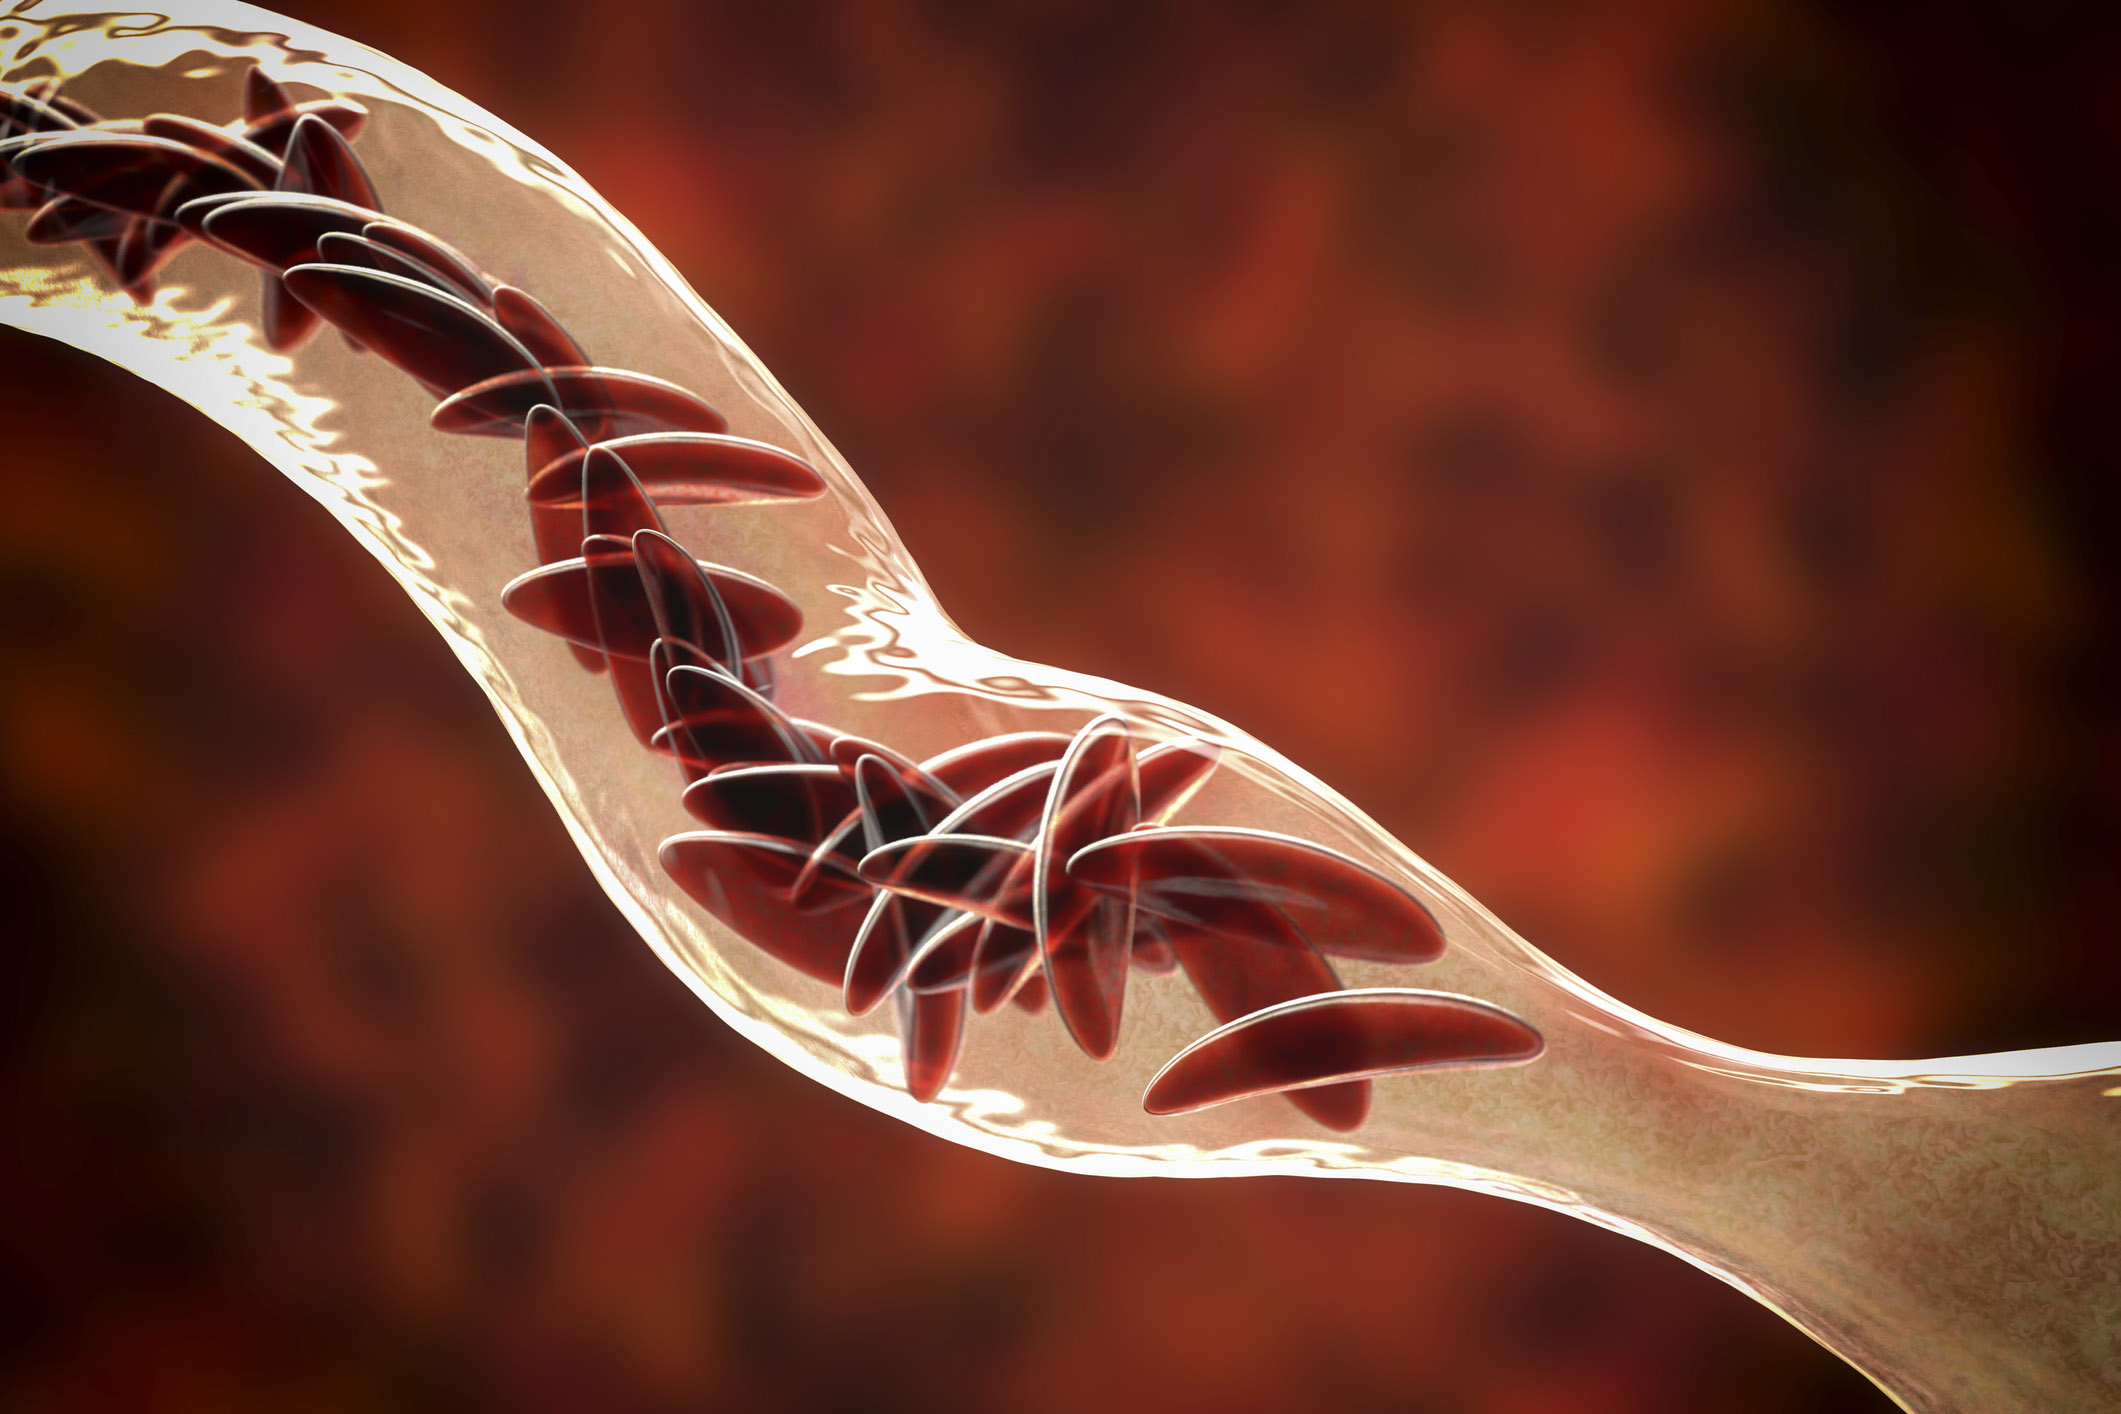 A blood vessel blocked by red blood cells that are affected by sickle cell anemia and are crescent shaped. (Getty Images)